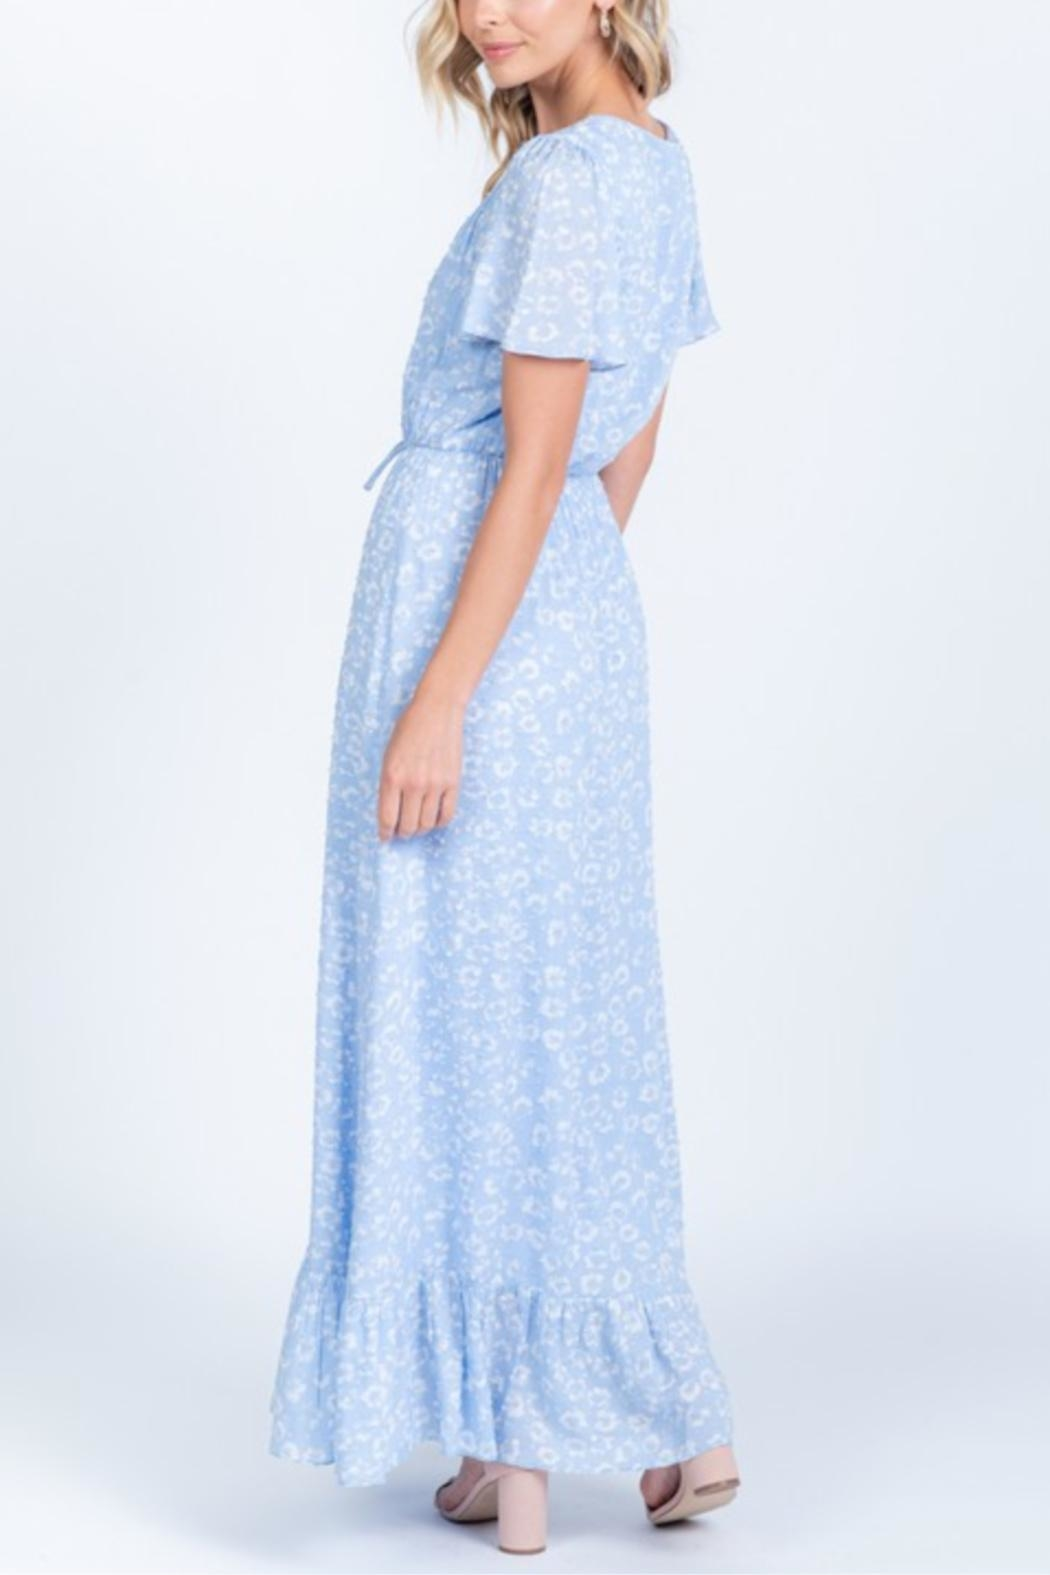 Everly Head In The Clouds-Dress - Back Cropped Image